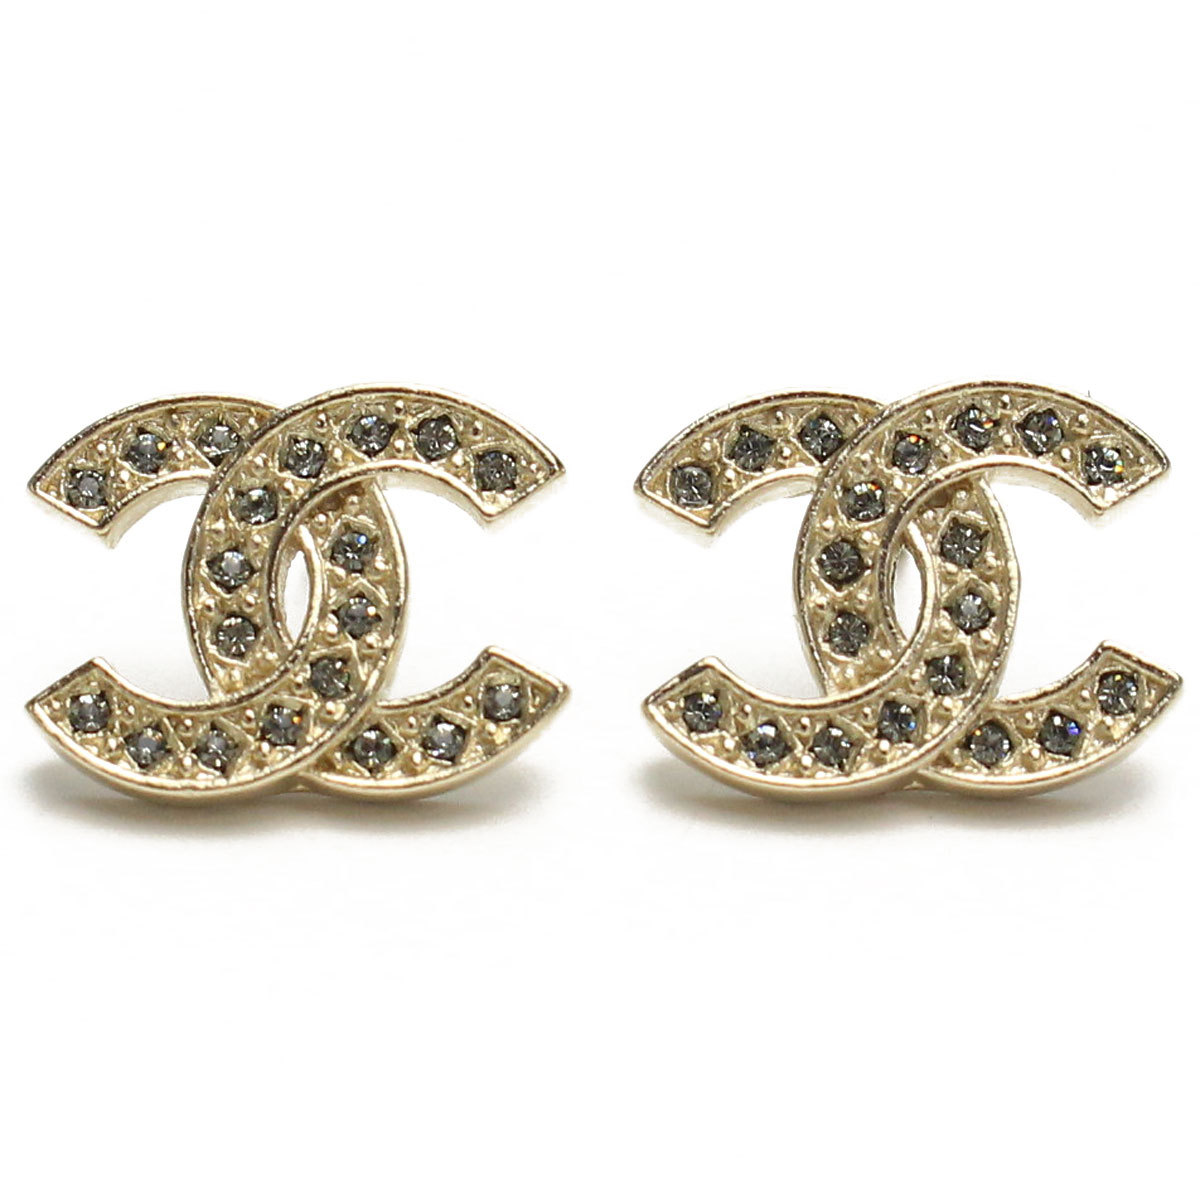 NEW Authentic Chanel Classic LARGE CC Logo Crystal Strass GOLD Stud Earrings